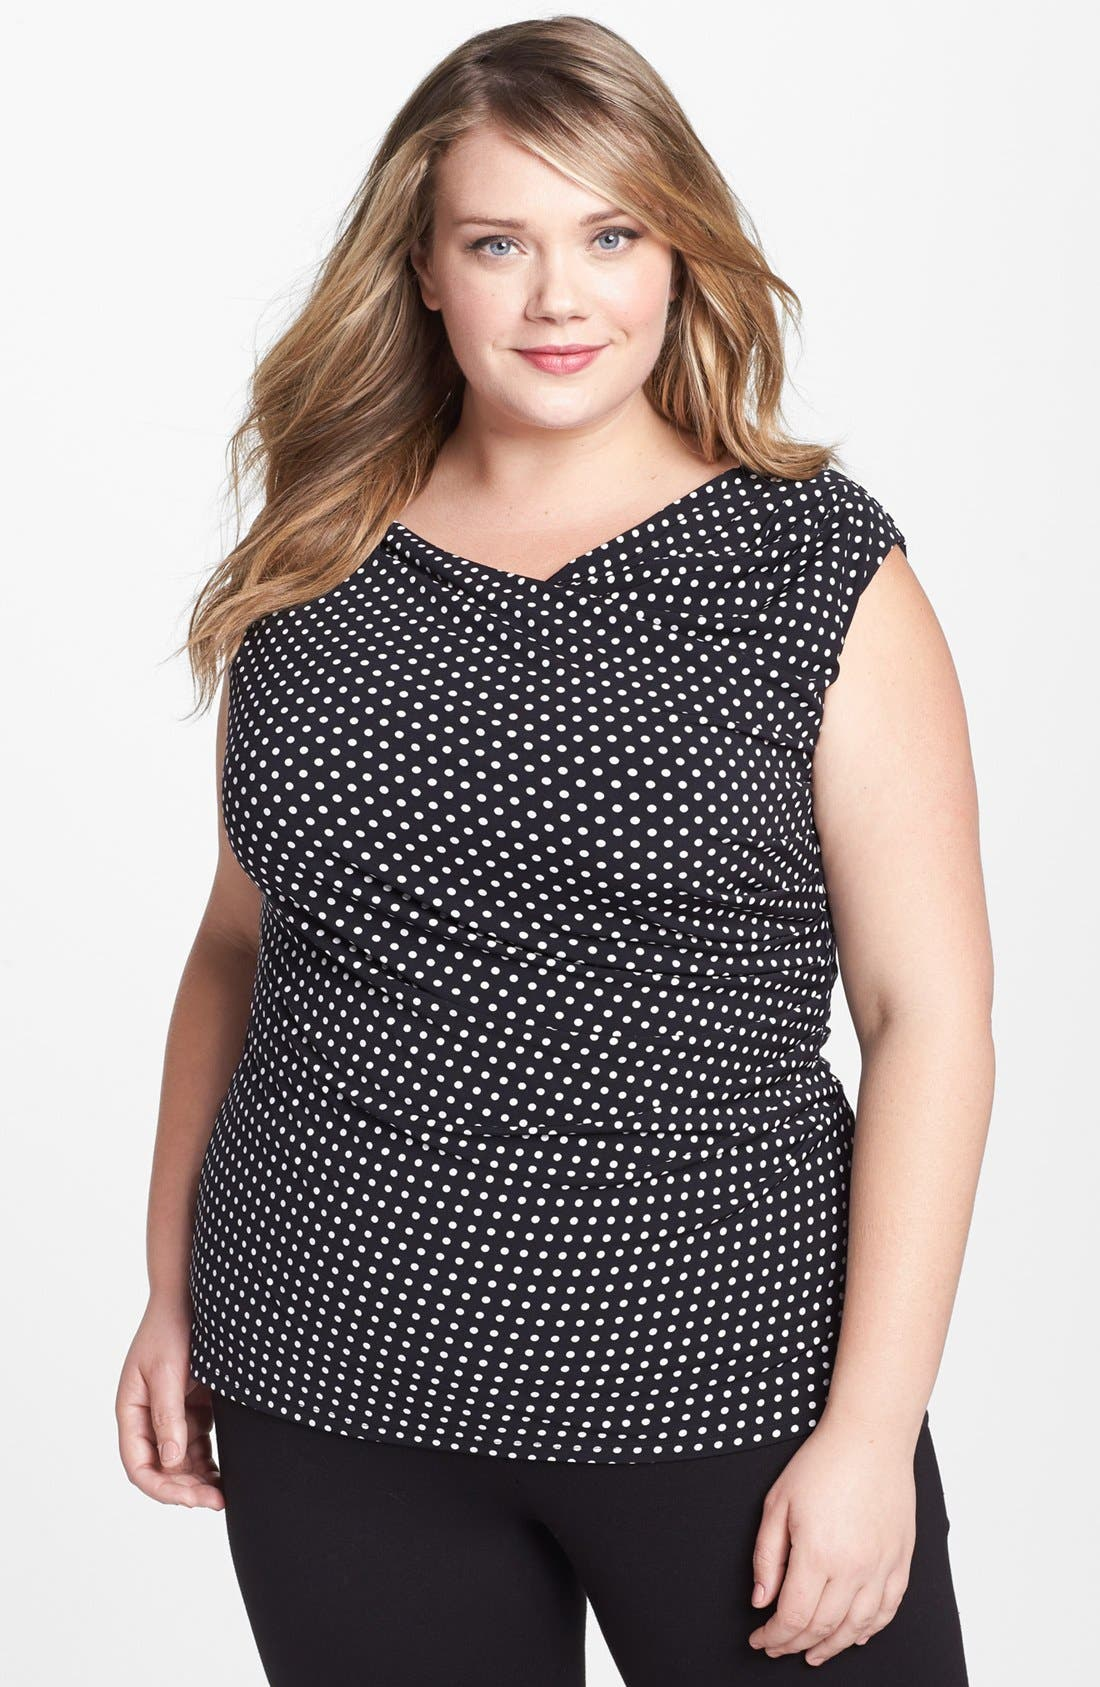 Alternate Image 1 Selected - Vince Camuto Ruched Polka Dot Top (Plus Size)